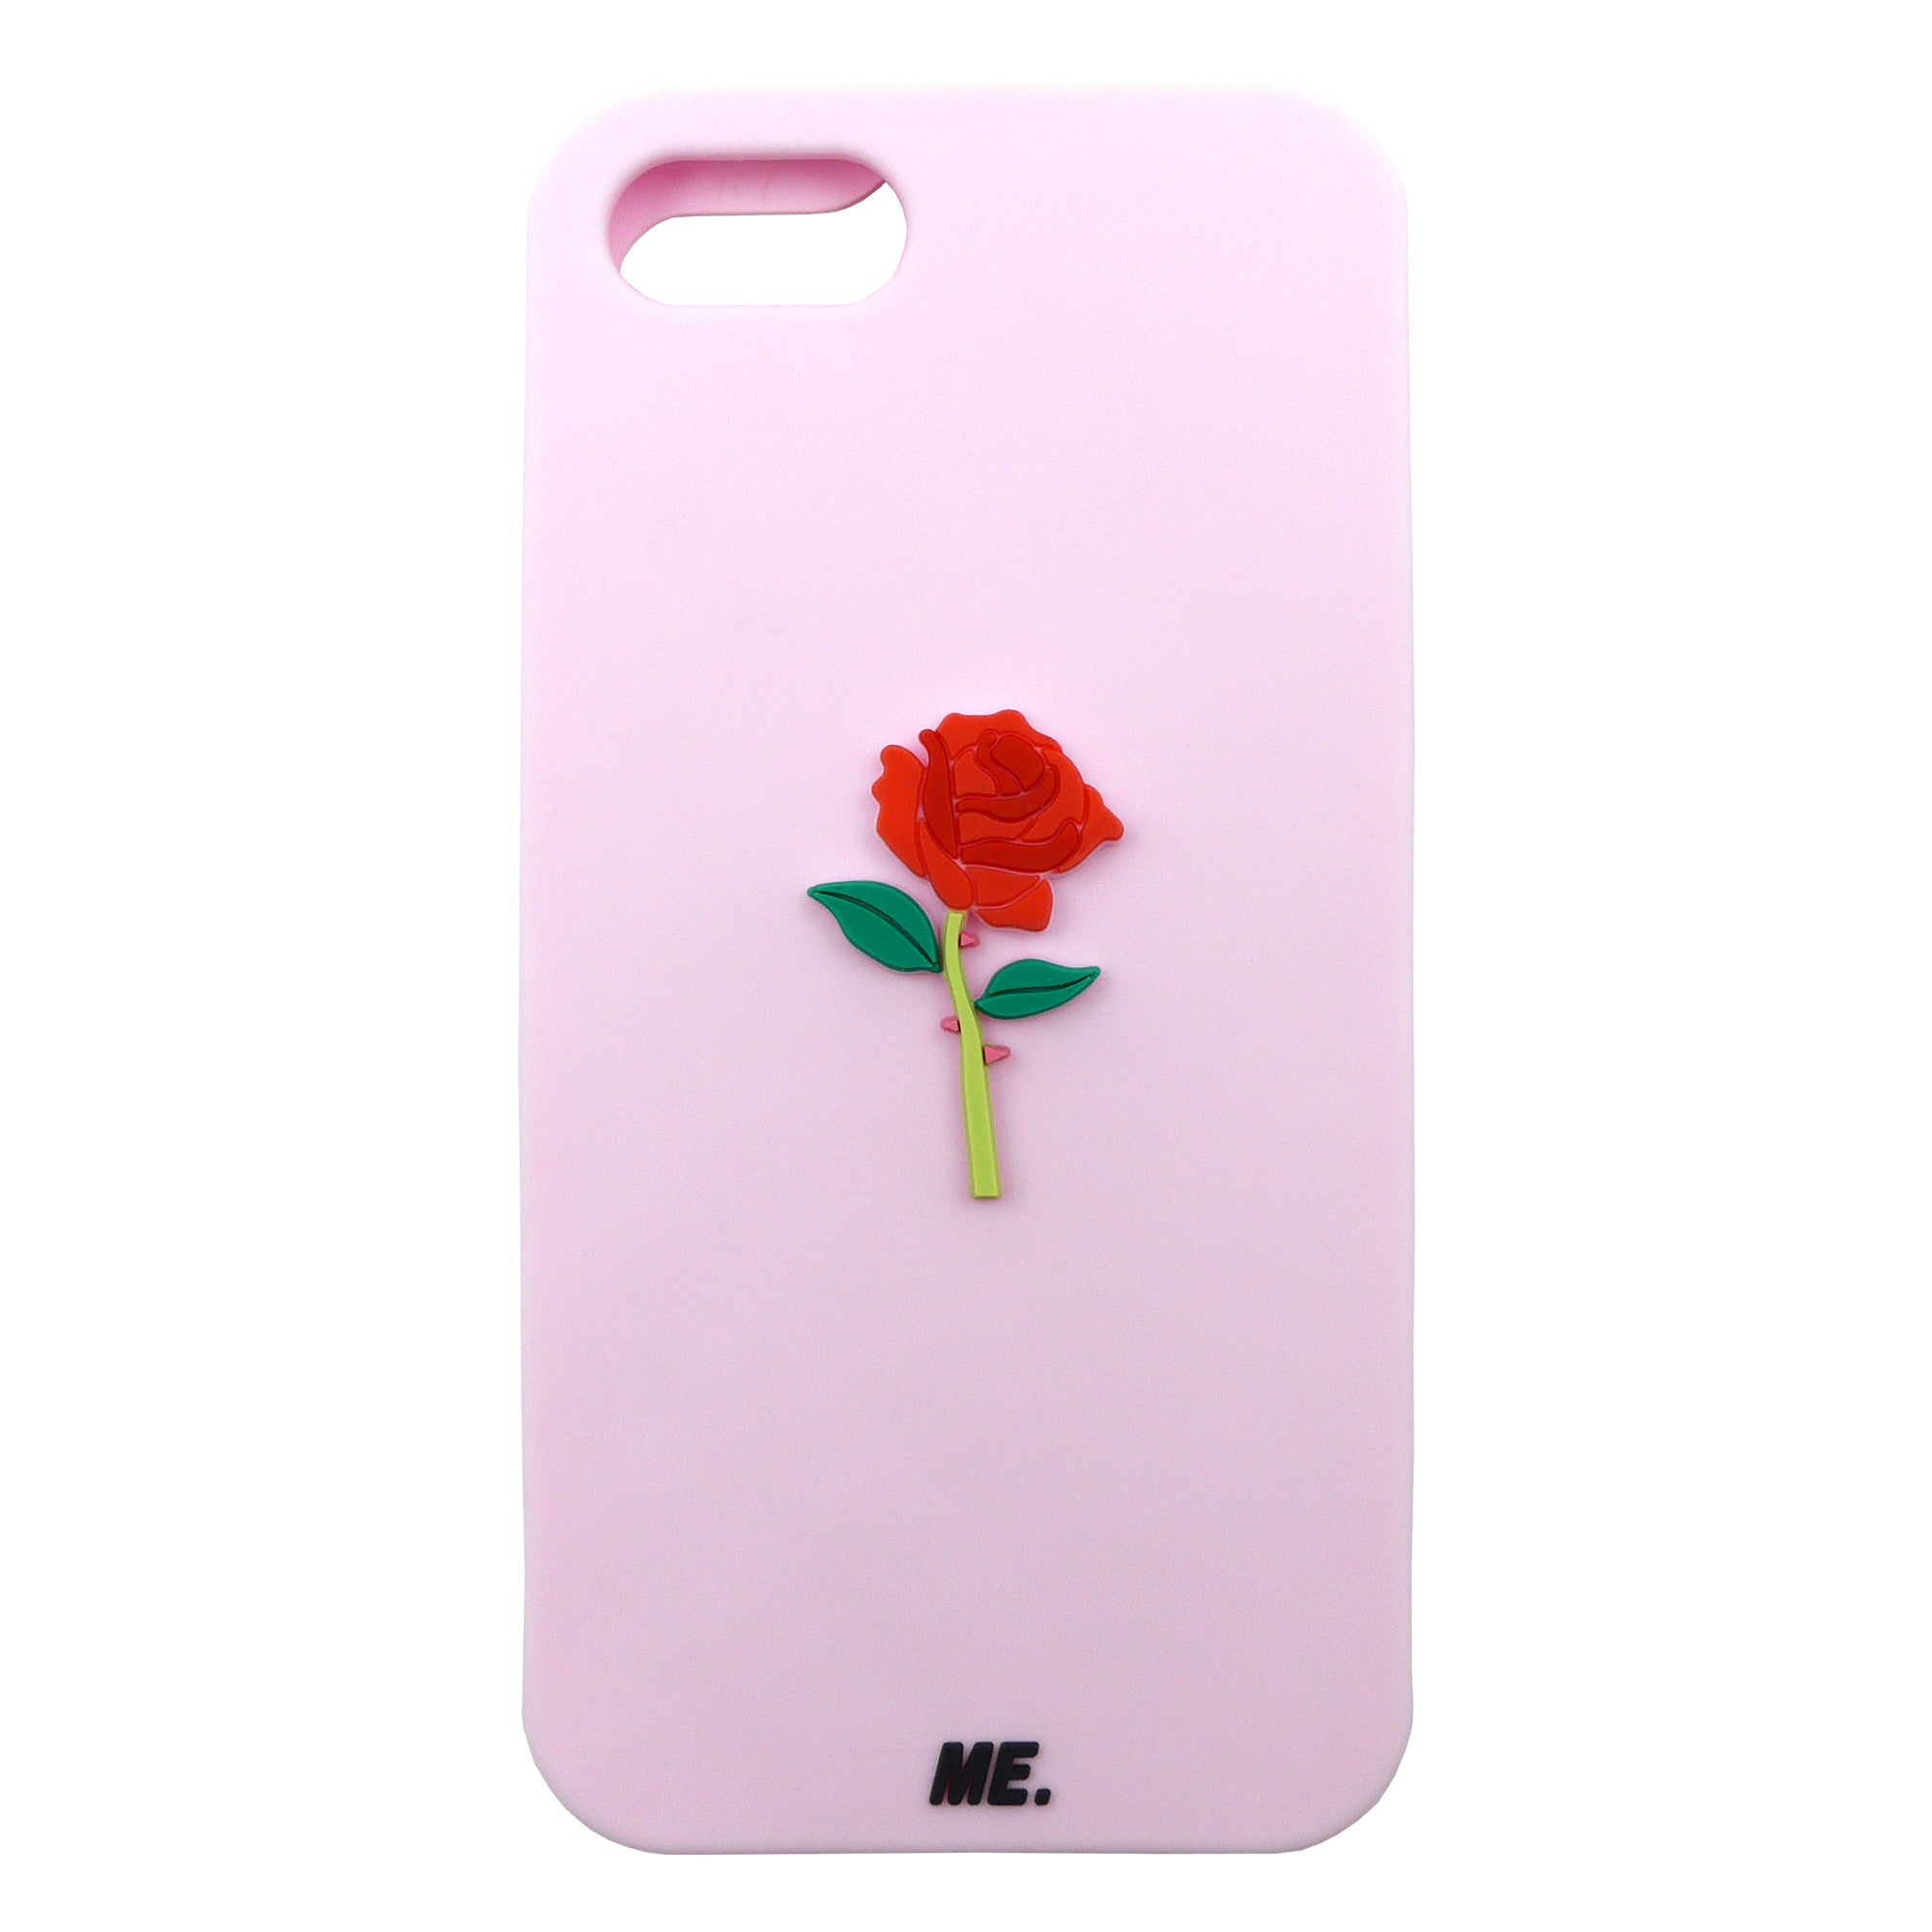 3 D Silicone Iphone 6 7 Case Single Rose Melody Ehsani